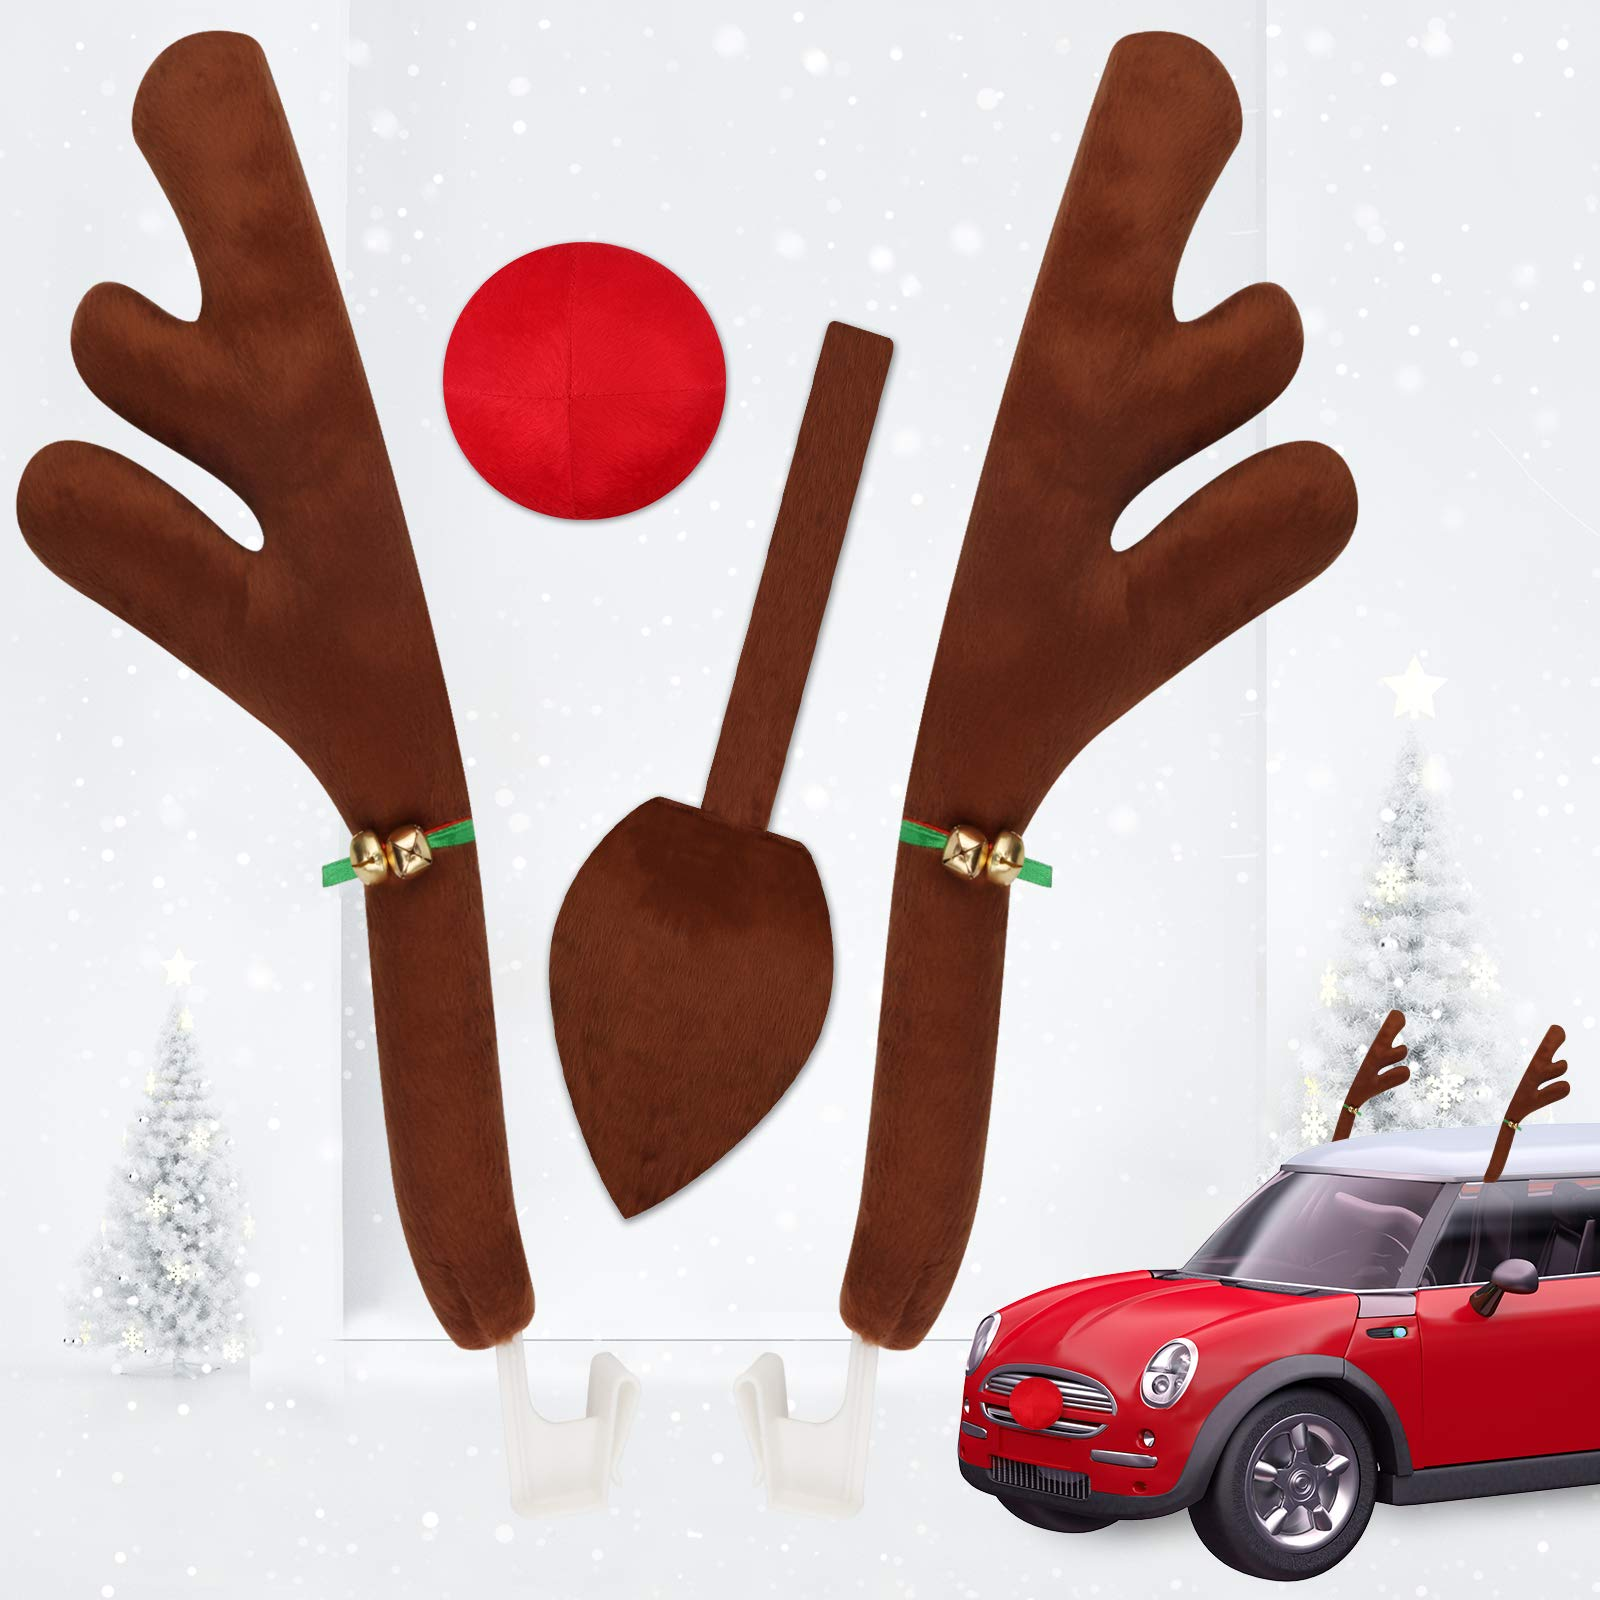 Qhui Car Christmas Decorations, Reindeer Antlers for Car, 5PCS Auto Antlers and Nose with Tail and Jingle Bells Reindeer Sticker for Vehicle Christmas Decorations